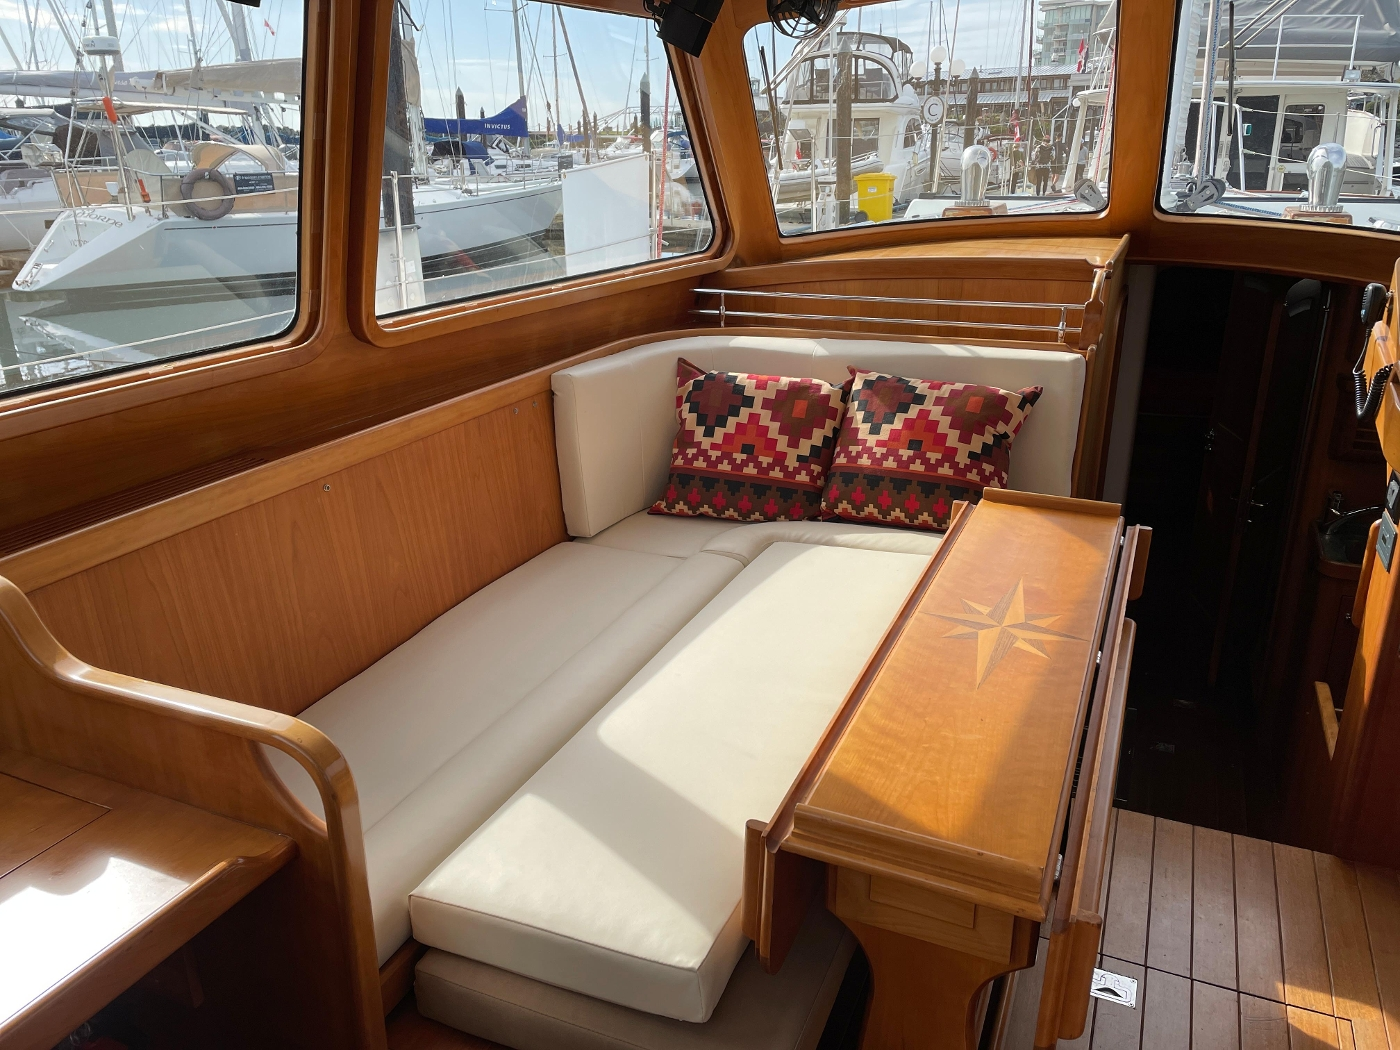 2008 Gorbon 53 Pilothouse, Settee converted to double bed